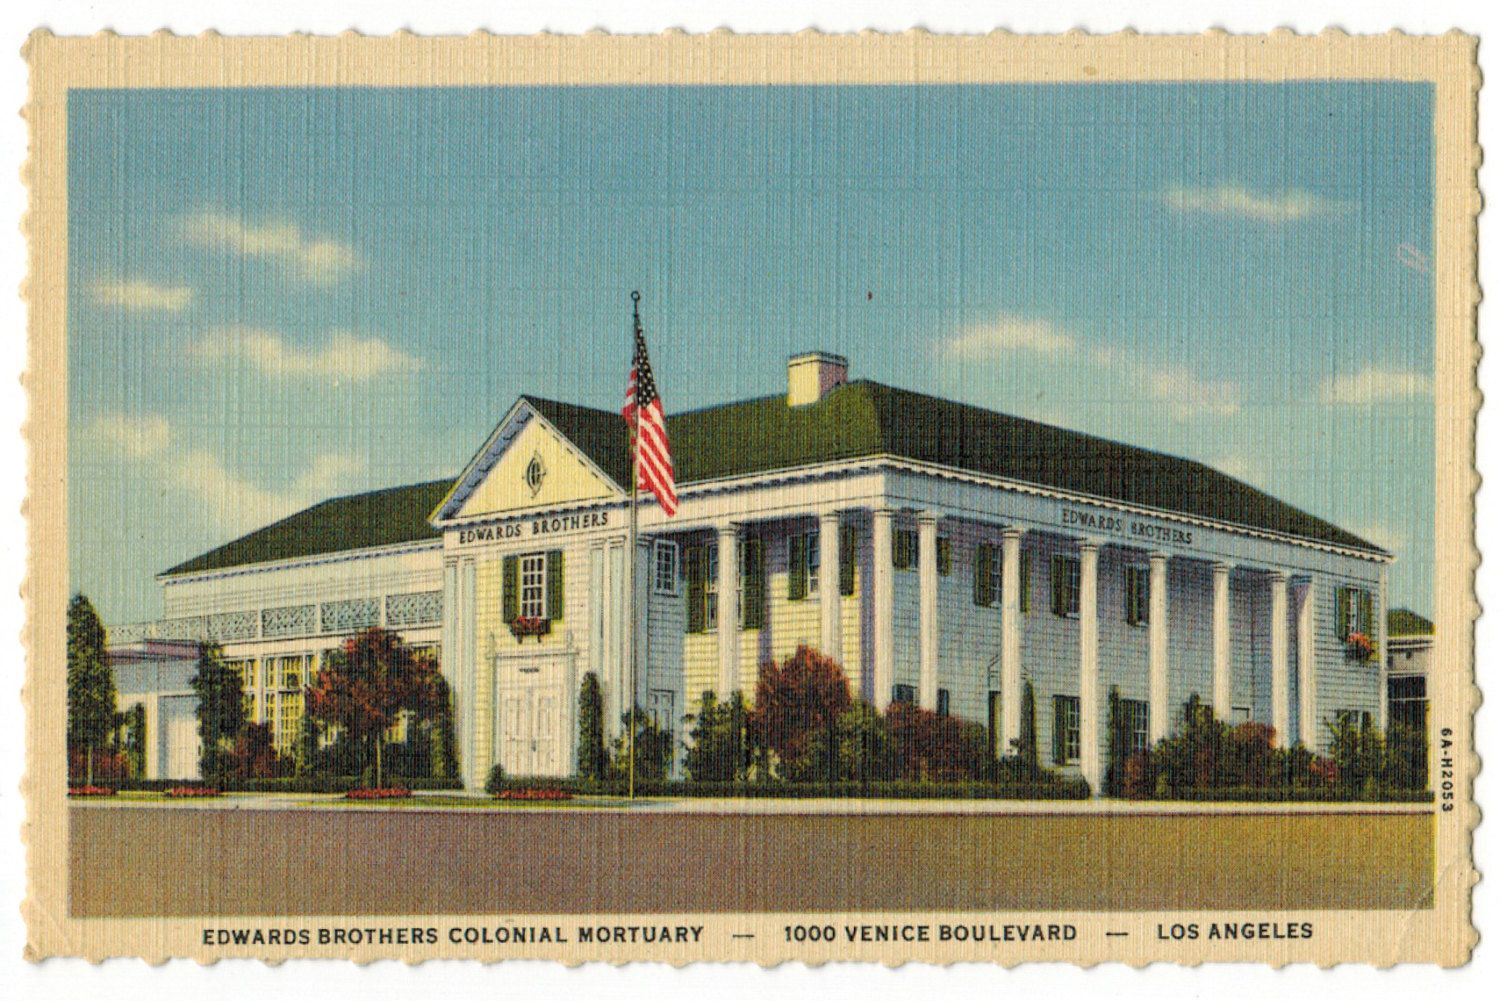 California Vintage Linen Postcard Los Angeles Edwards Brothers Colonial Mortuary 1930s Advertisement Funeral Hom Postcard Antique Postcard Funeral Home